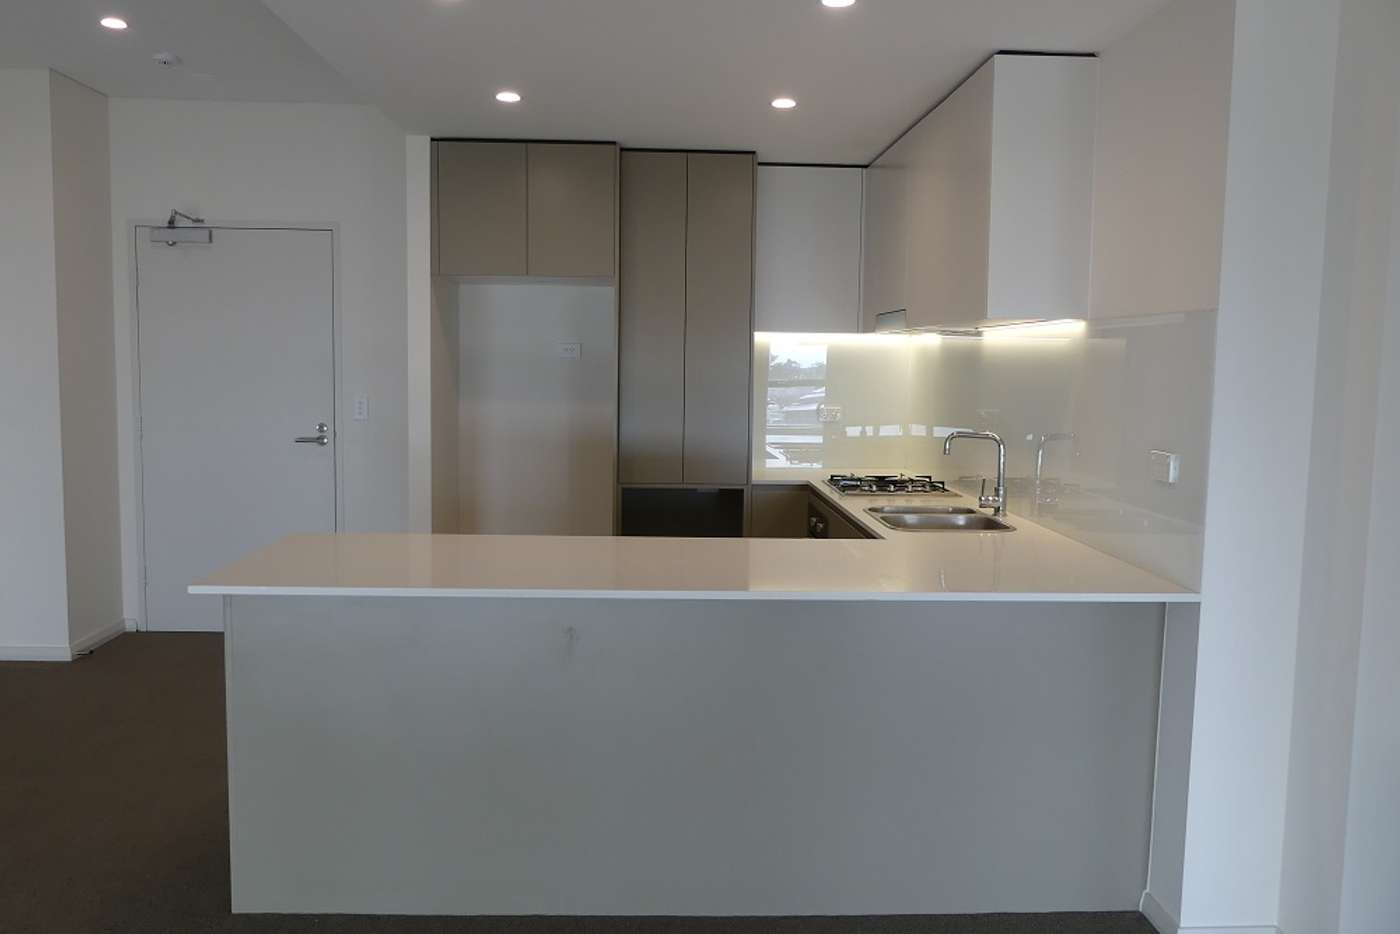 Fifth view of Homely apartment listing, 325/10 Hezlett Road, North Kellyville NSW 2155